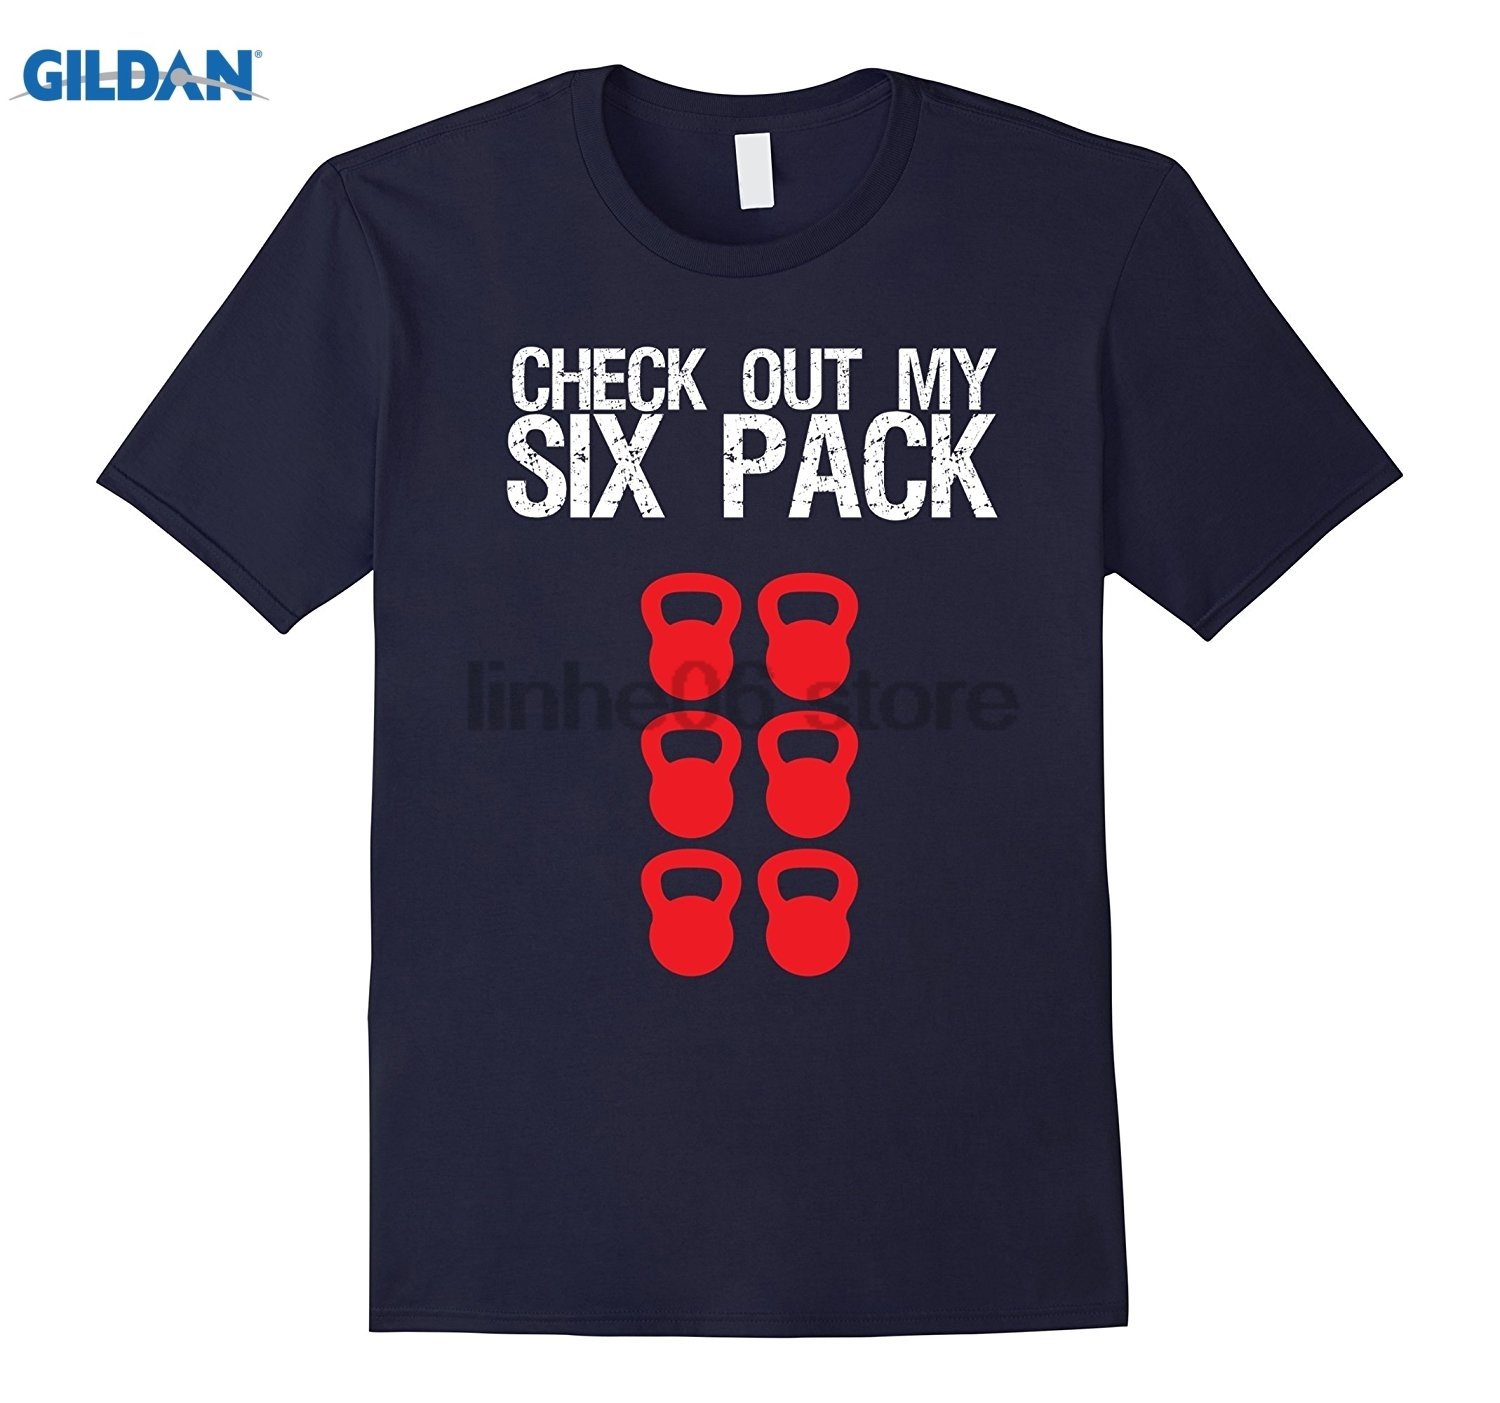 GILDAN Check Out My 6 Pack Cross Fit T-Shirt Funny Workout Fitness Mothers Day Ms. T-shirt